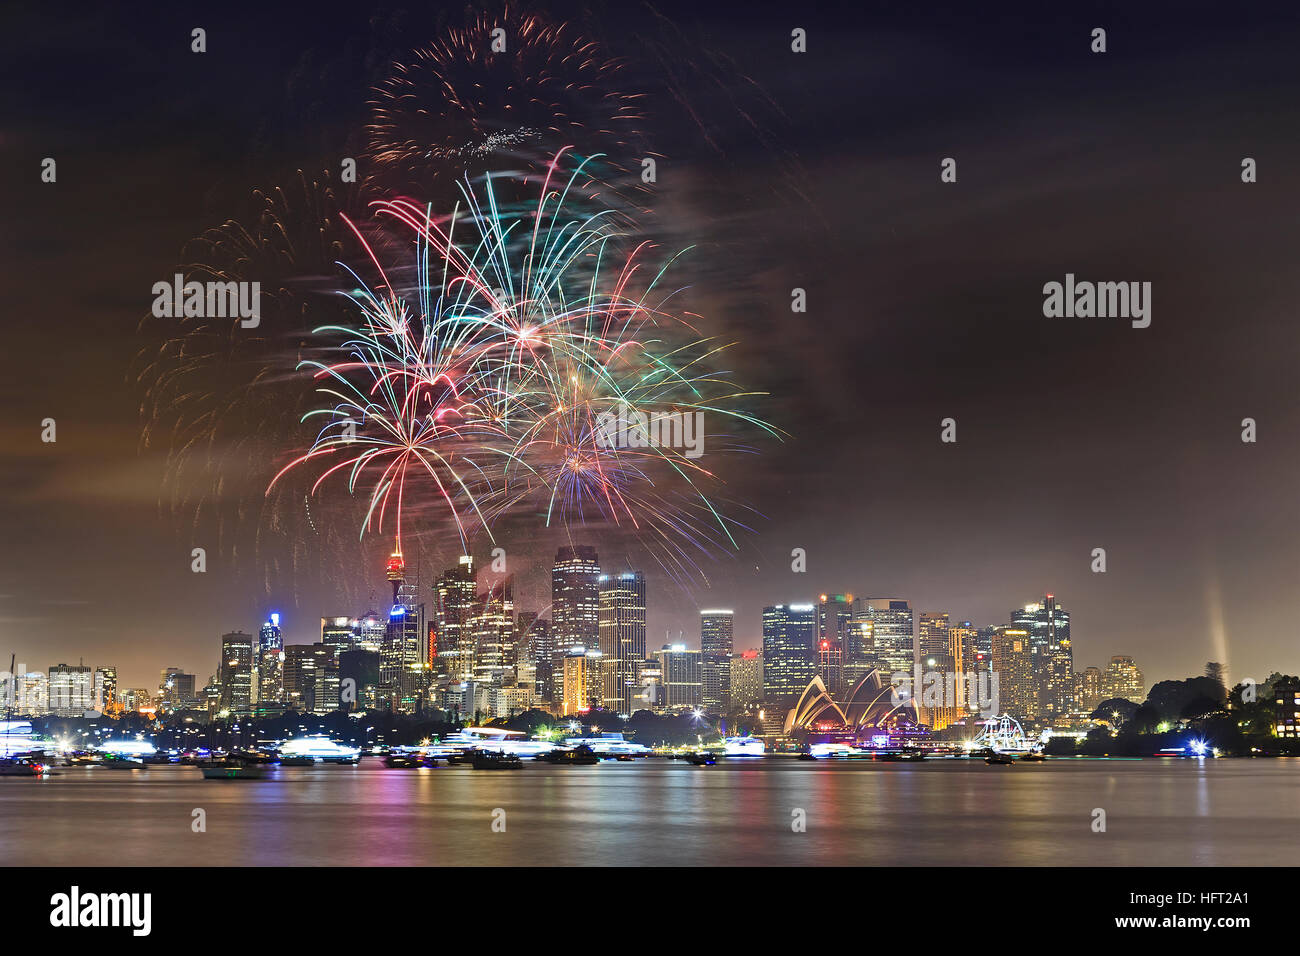 New year eve fireworks in Sydney over Harbour waters above city CBD - bright multi-colour light balls in the sky. - Stock Image